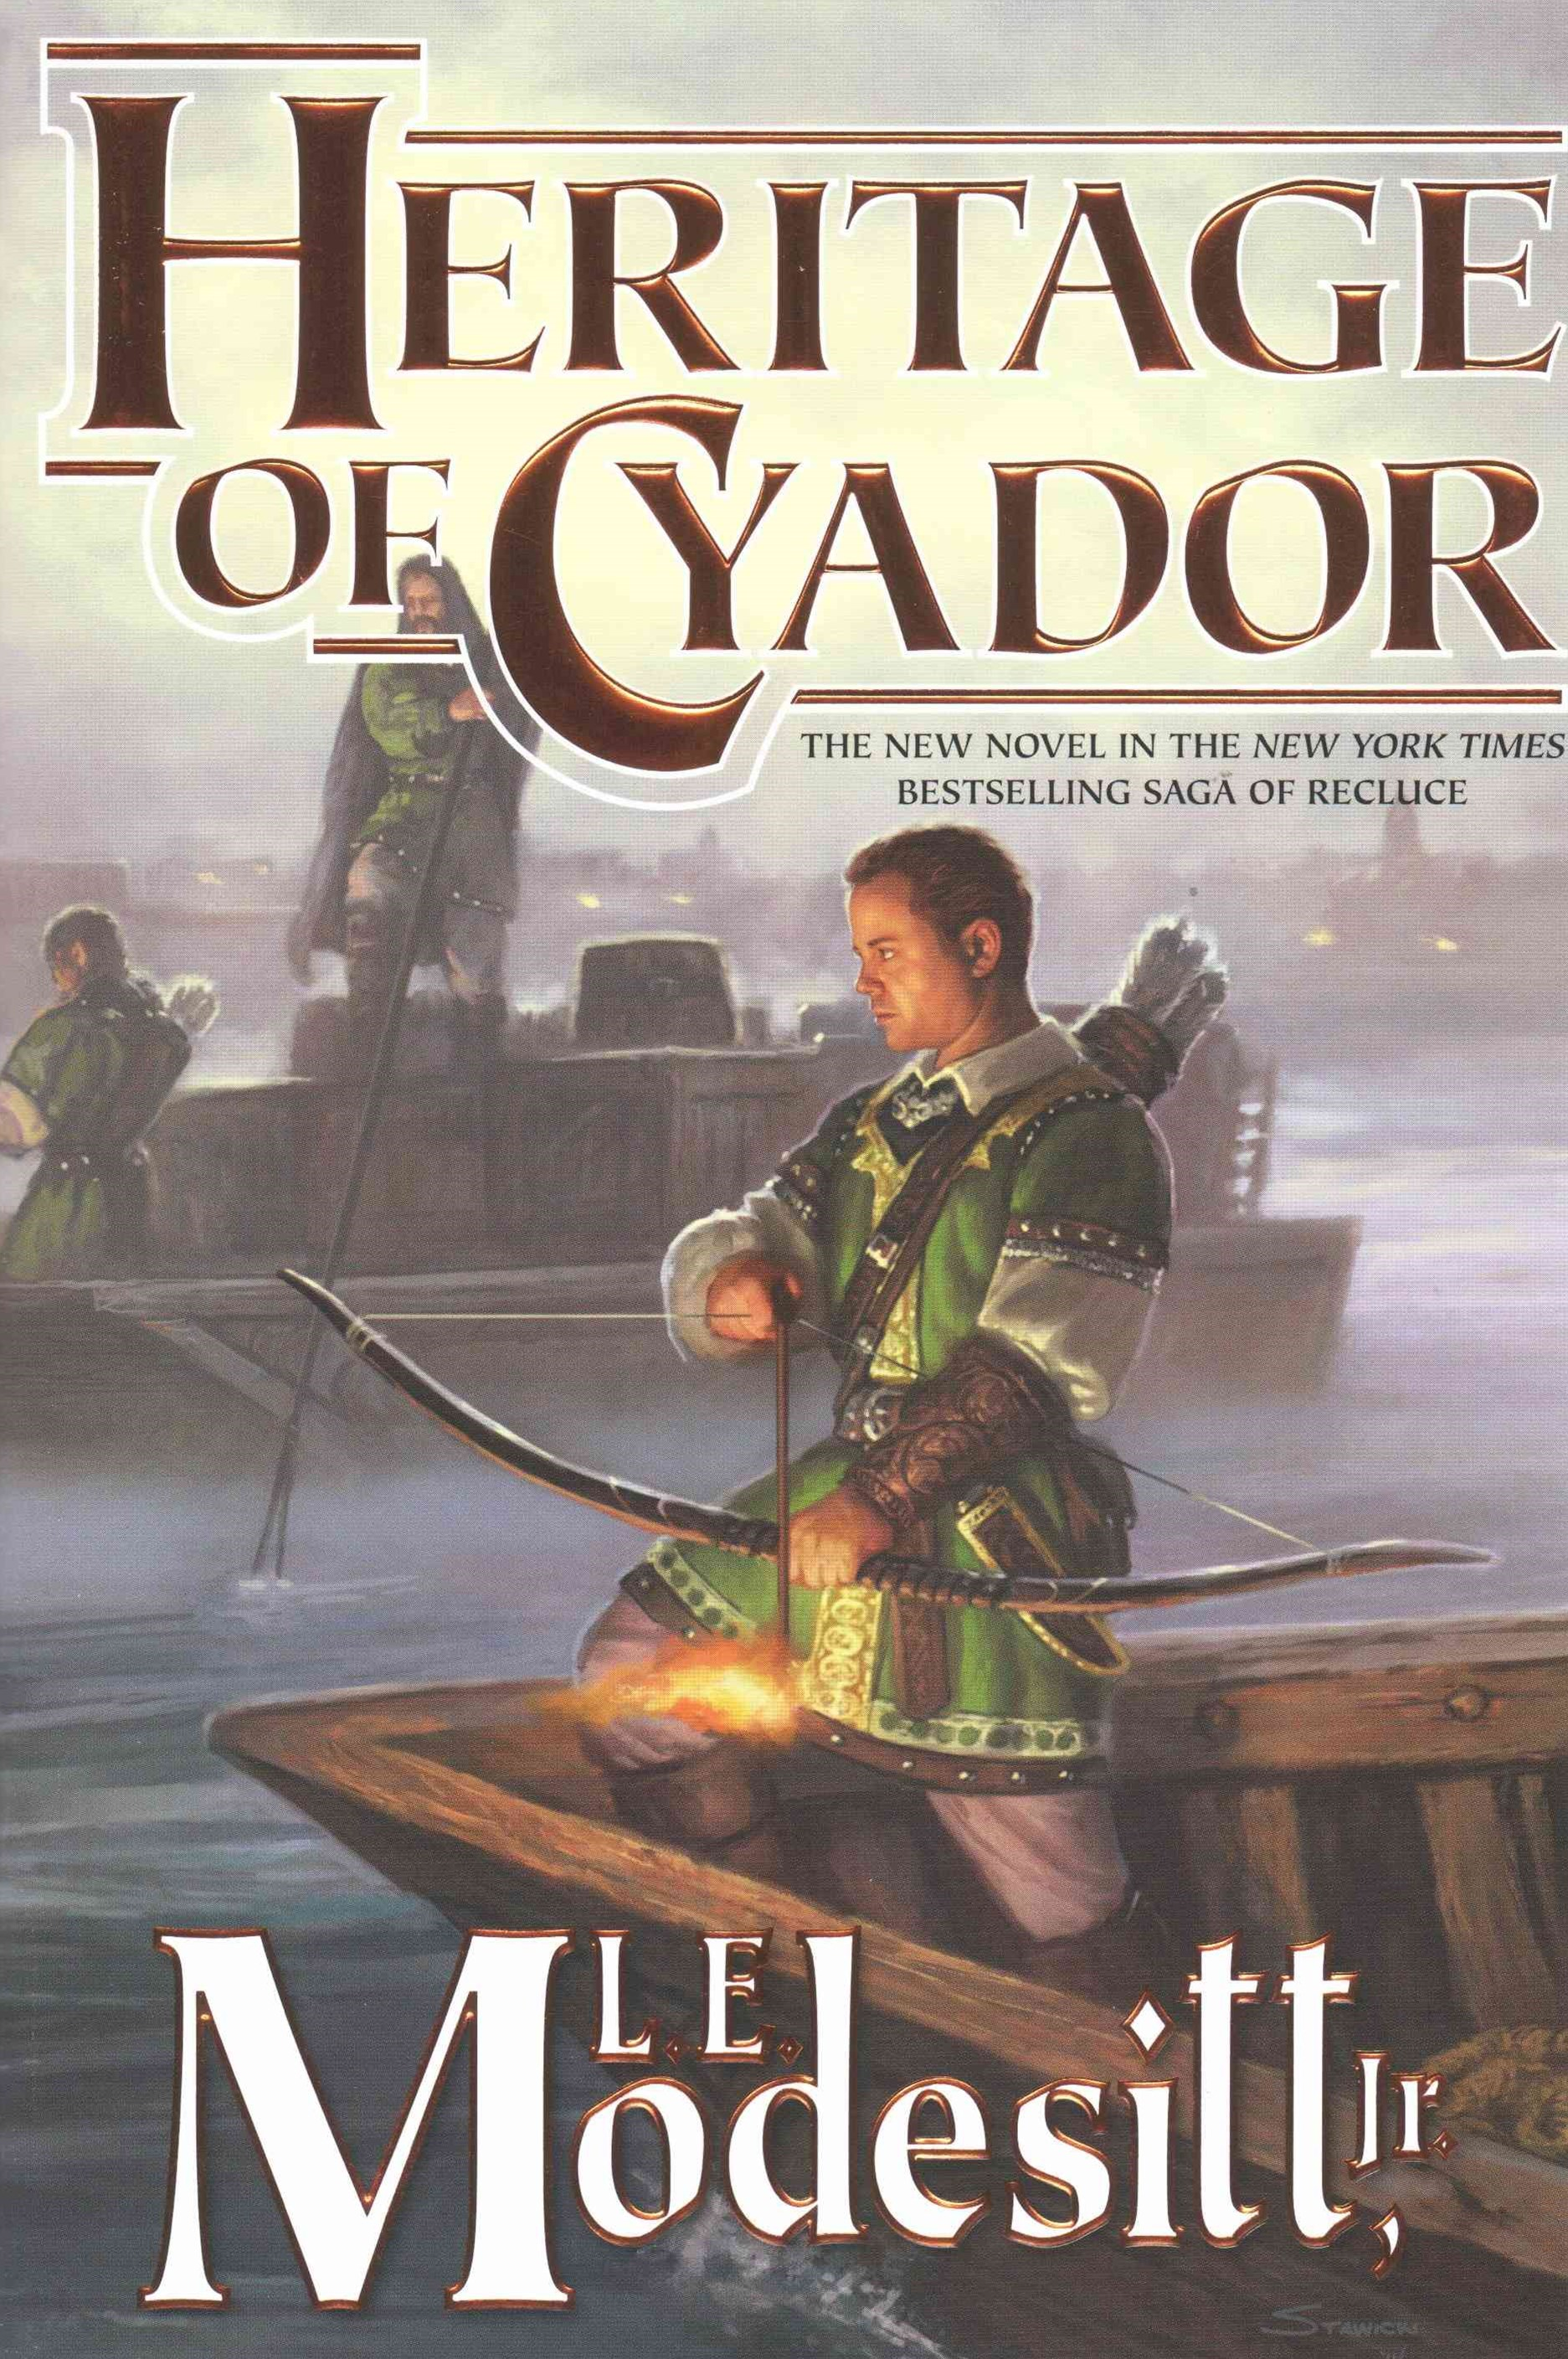 Heritage of Cyador